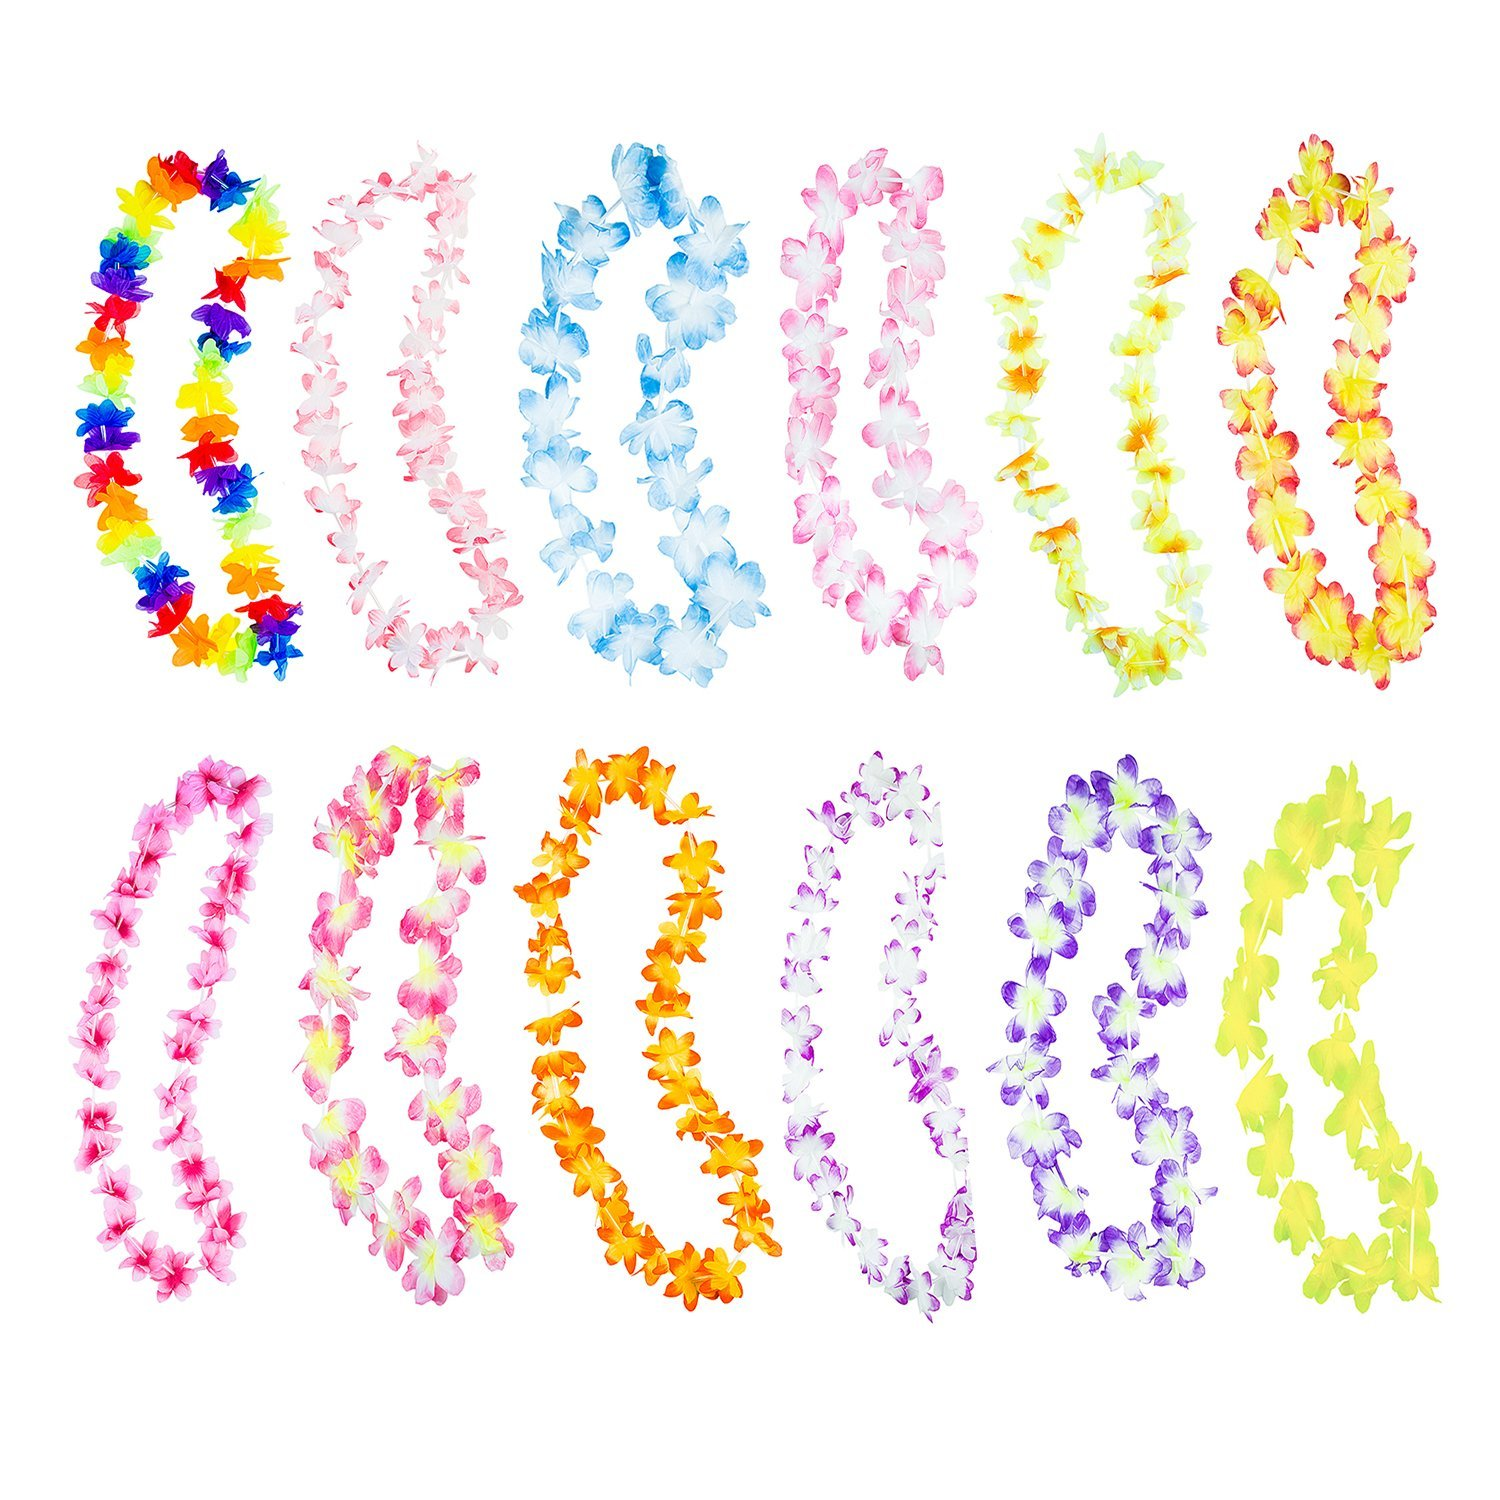 Hawaiian Ruffled Colorful Luau Silk Flower Leis Necklaces (50 Pack) by Super Z Outlet